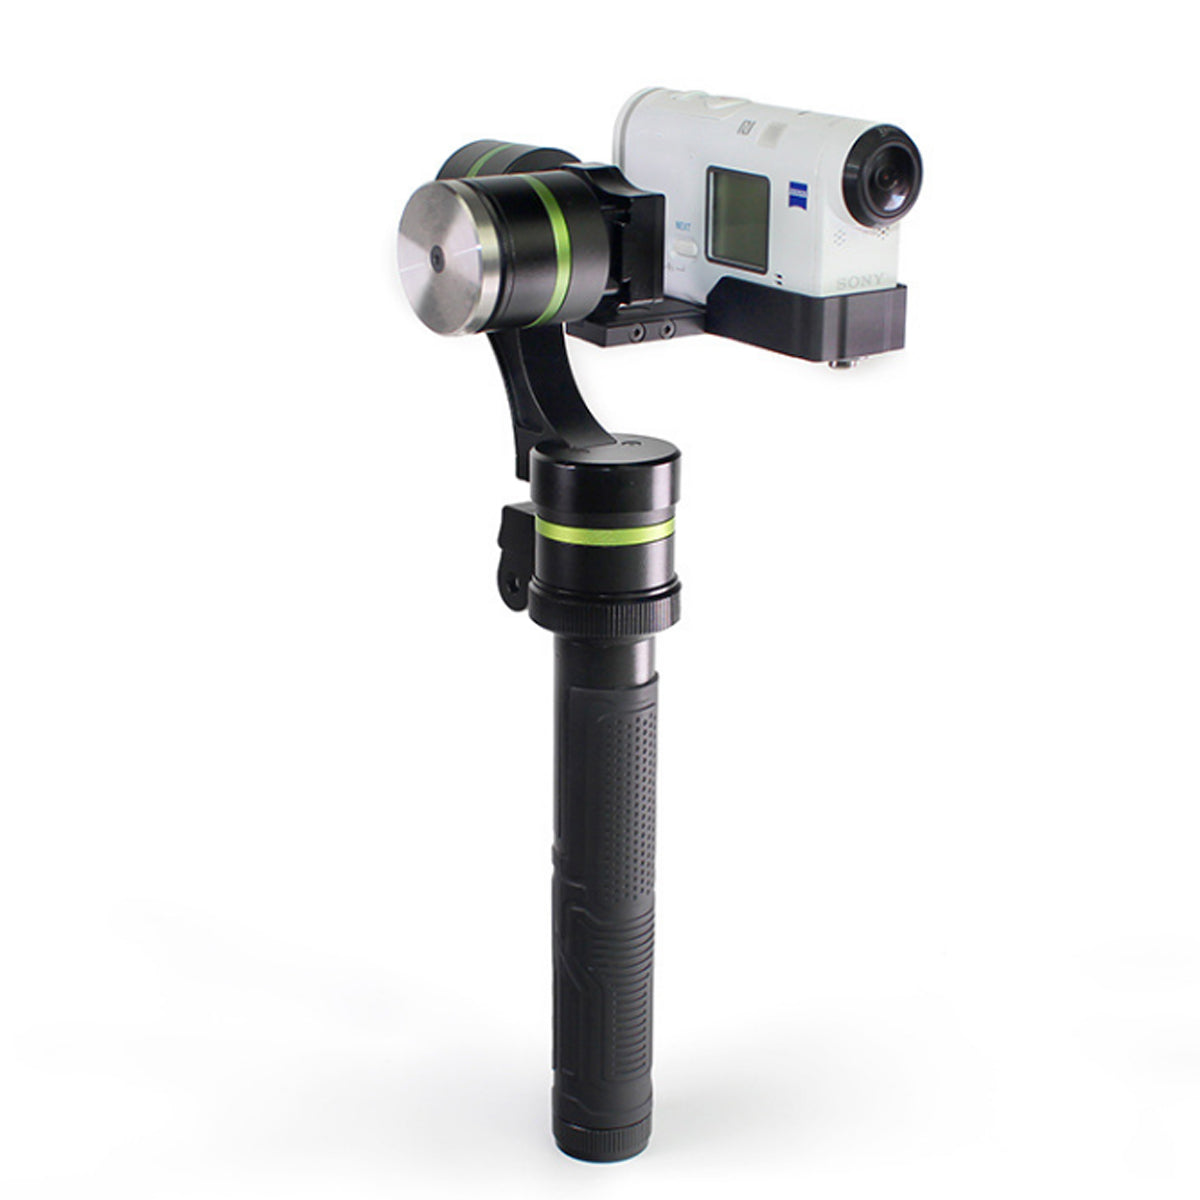 GCH-So1 Action Camera Handheld Stabilizer Clamp For Stabilizer Gimbal LA3D LA3D2 Sports